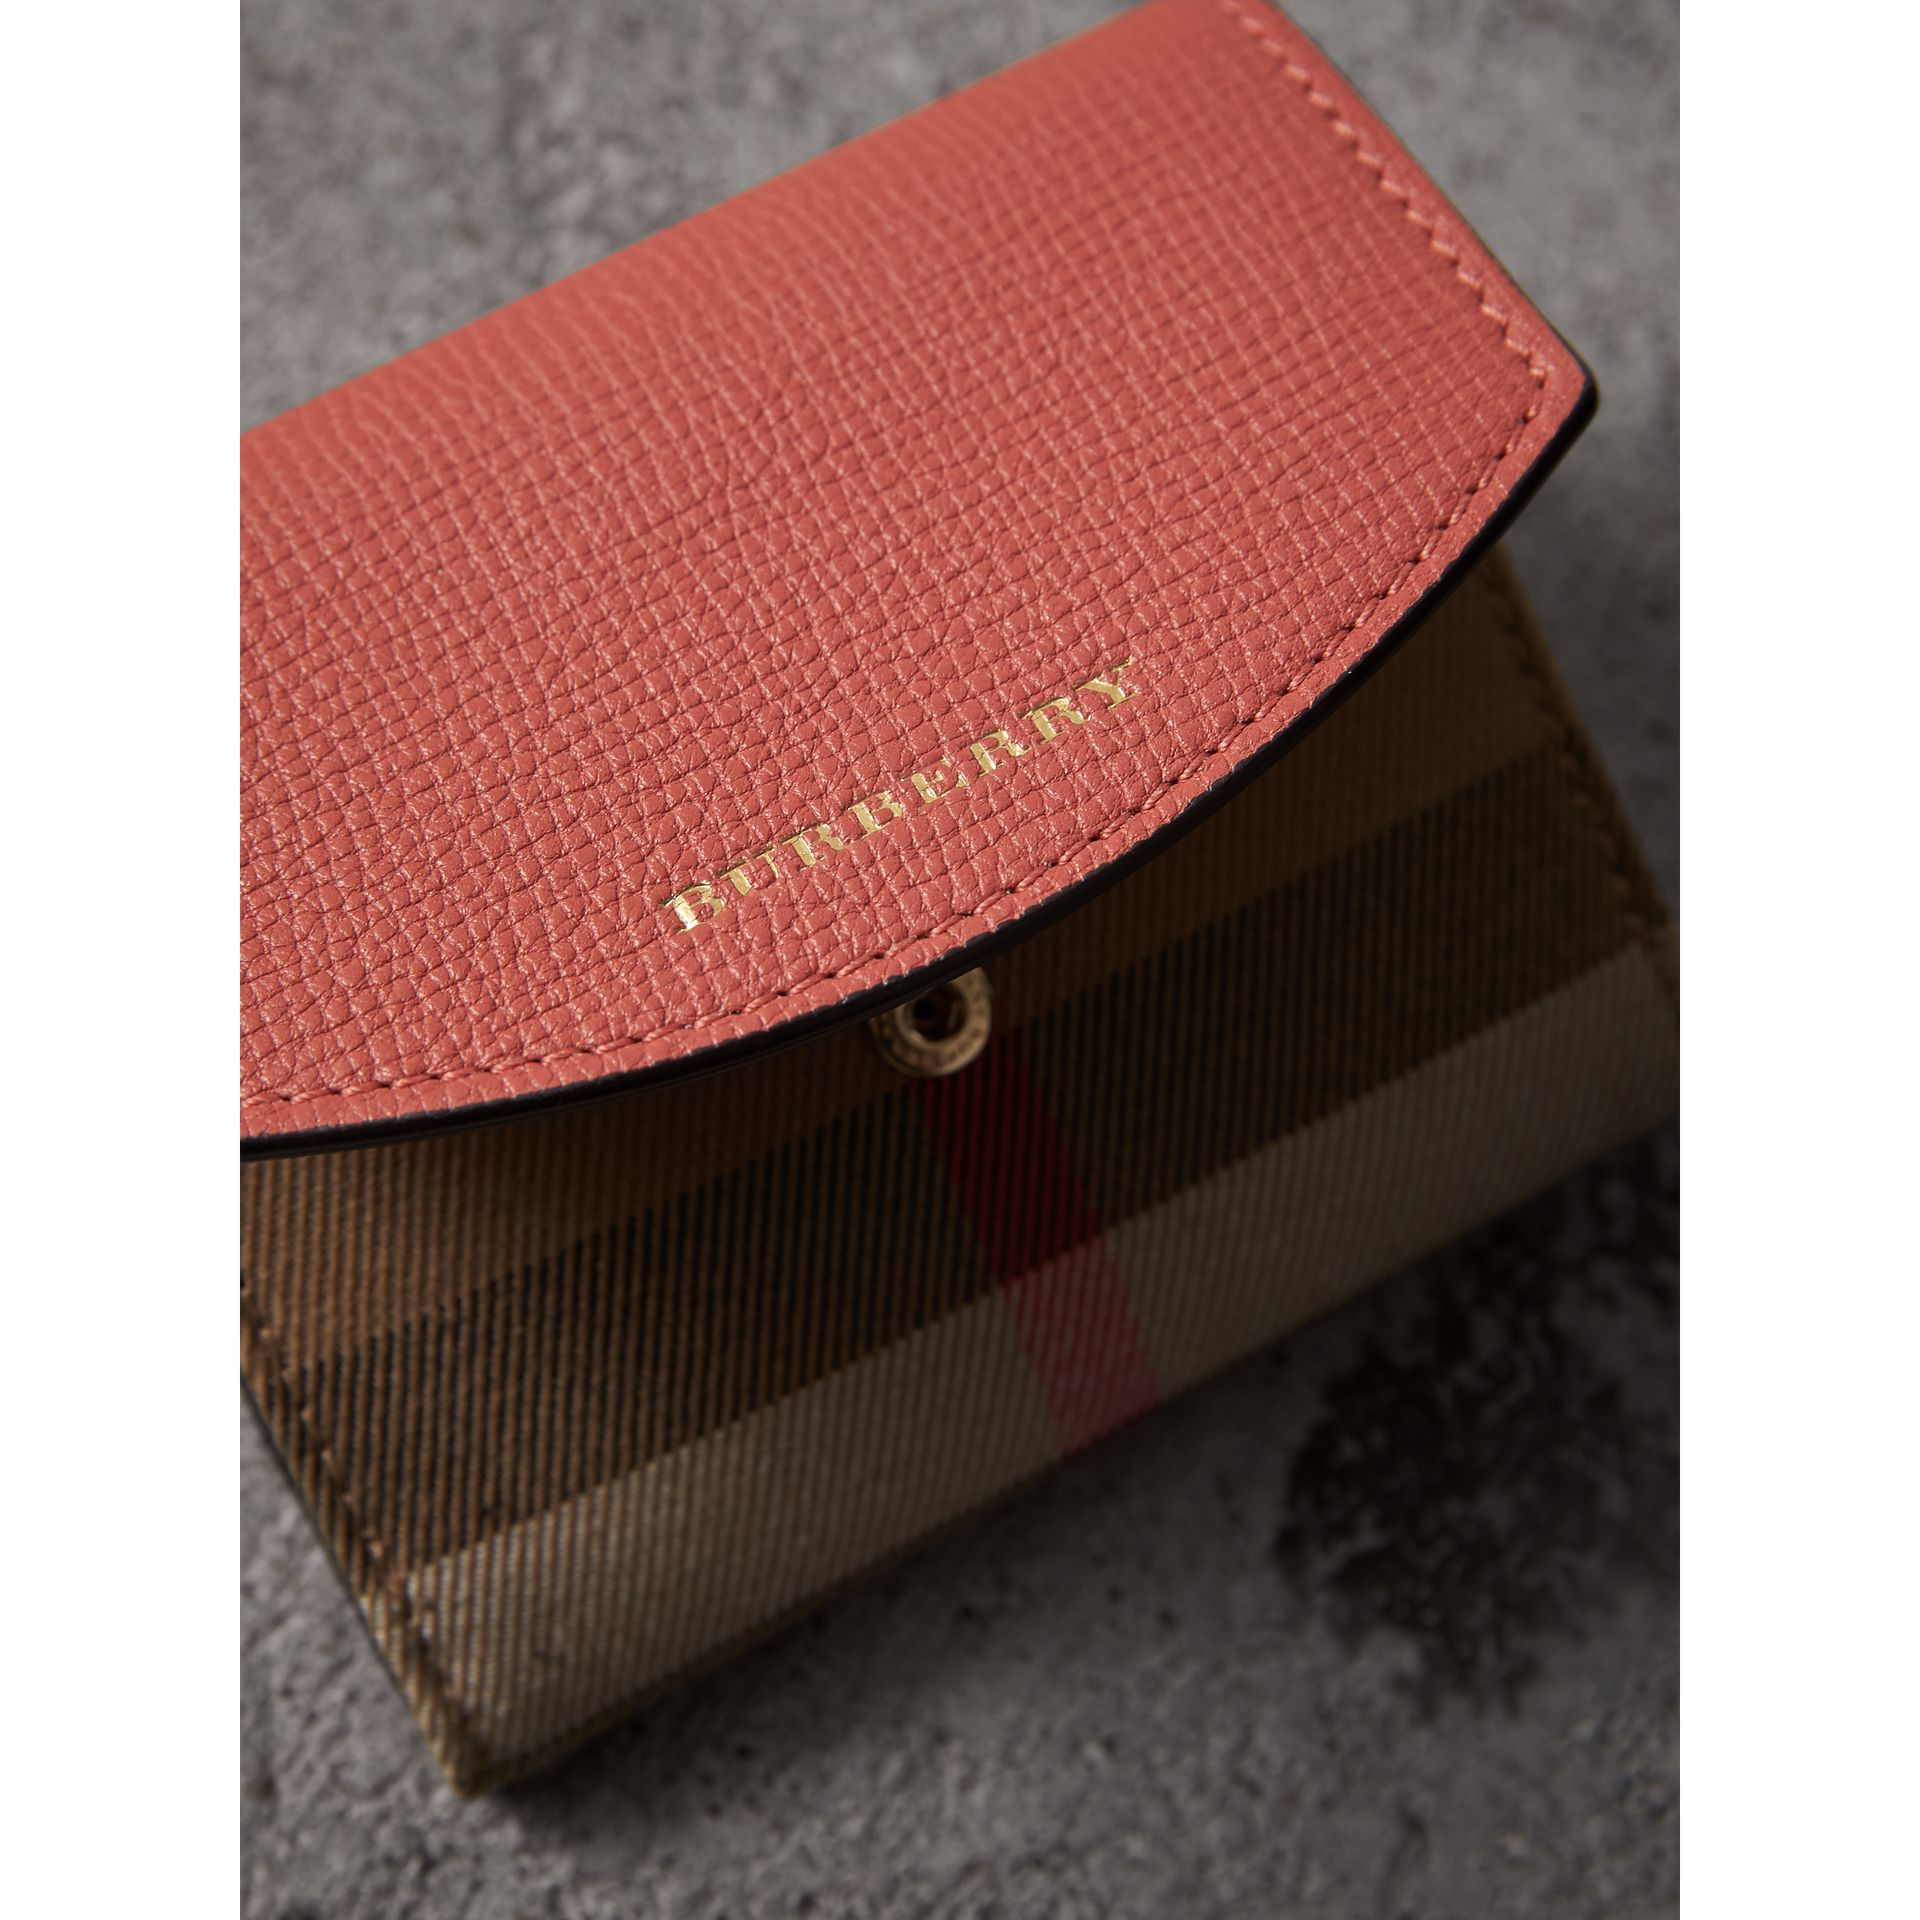 House Check and Leather Wallet in Cinnamon Red - Women | Burberry Canada - gallery image 1